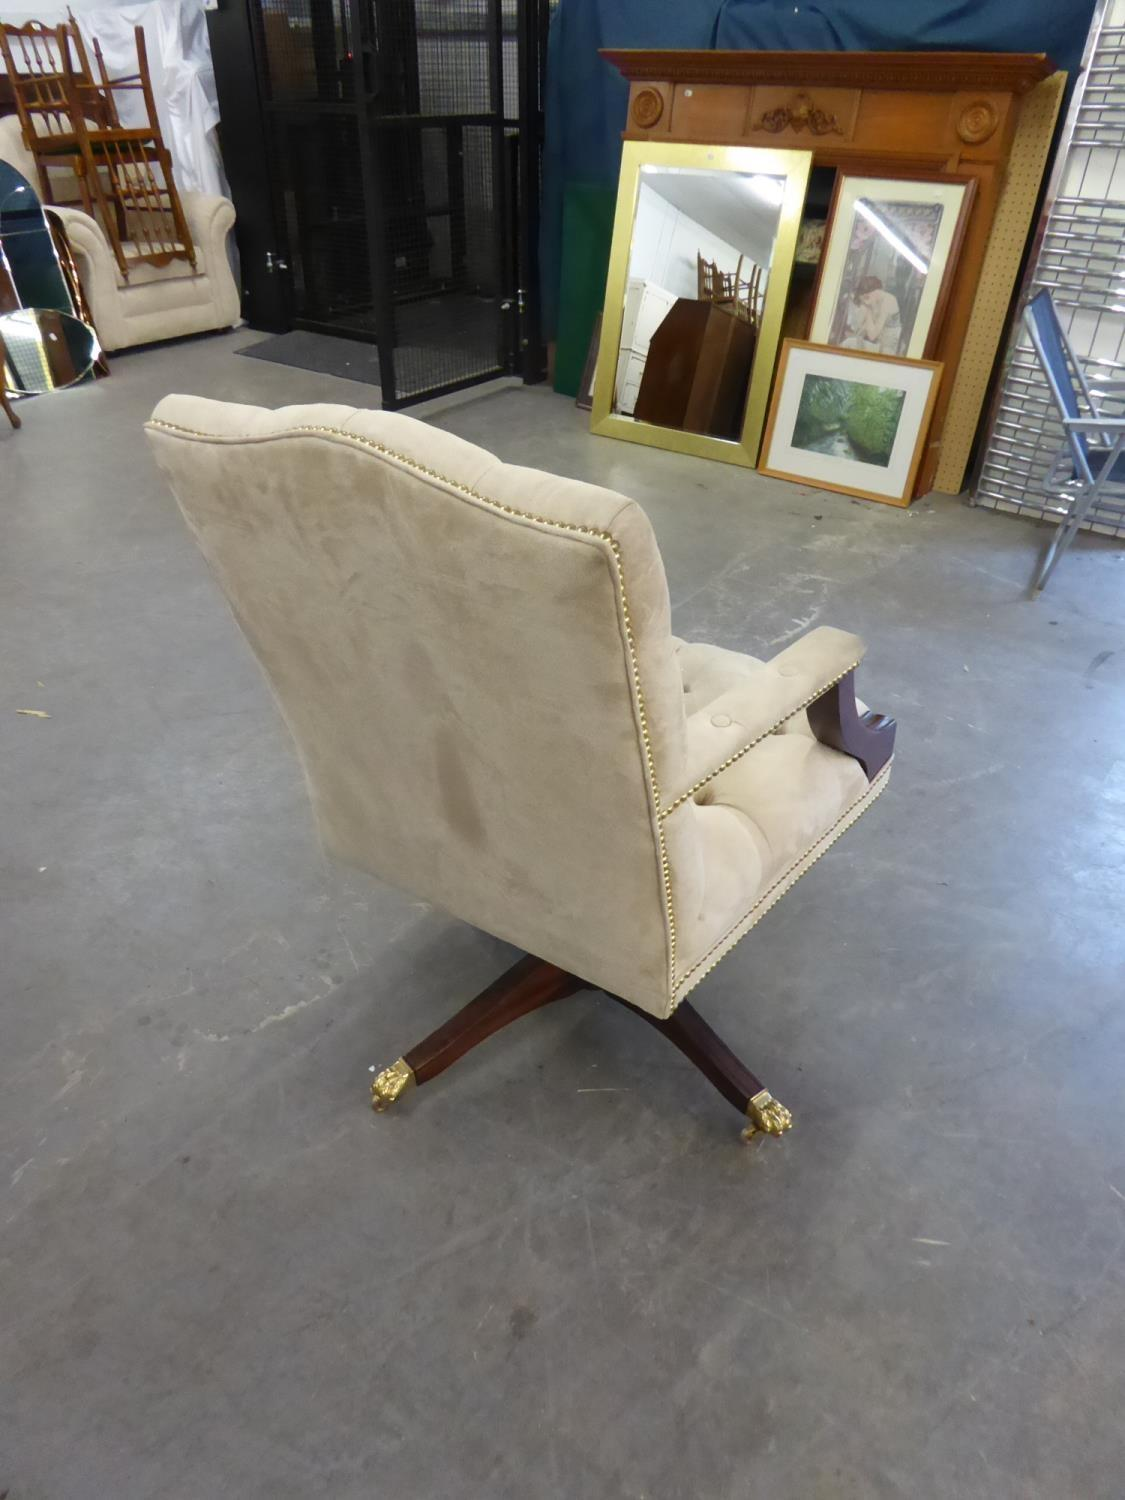 *BEVAN FUNNELL GEORGE III STYLE MAHOGANY REVOLVING AND TILTING DESK ARMCHAIR, THE YOKE TOPPED BUTTON - Image 2 of 2